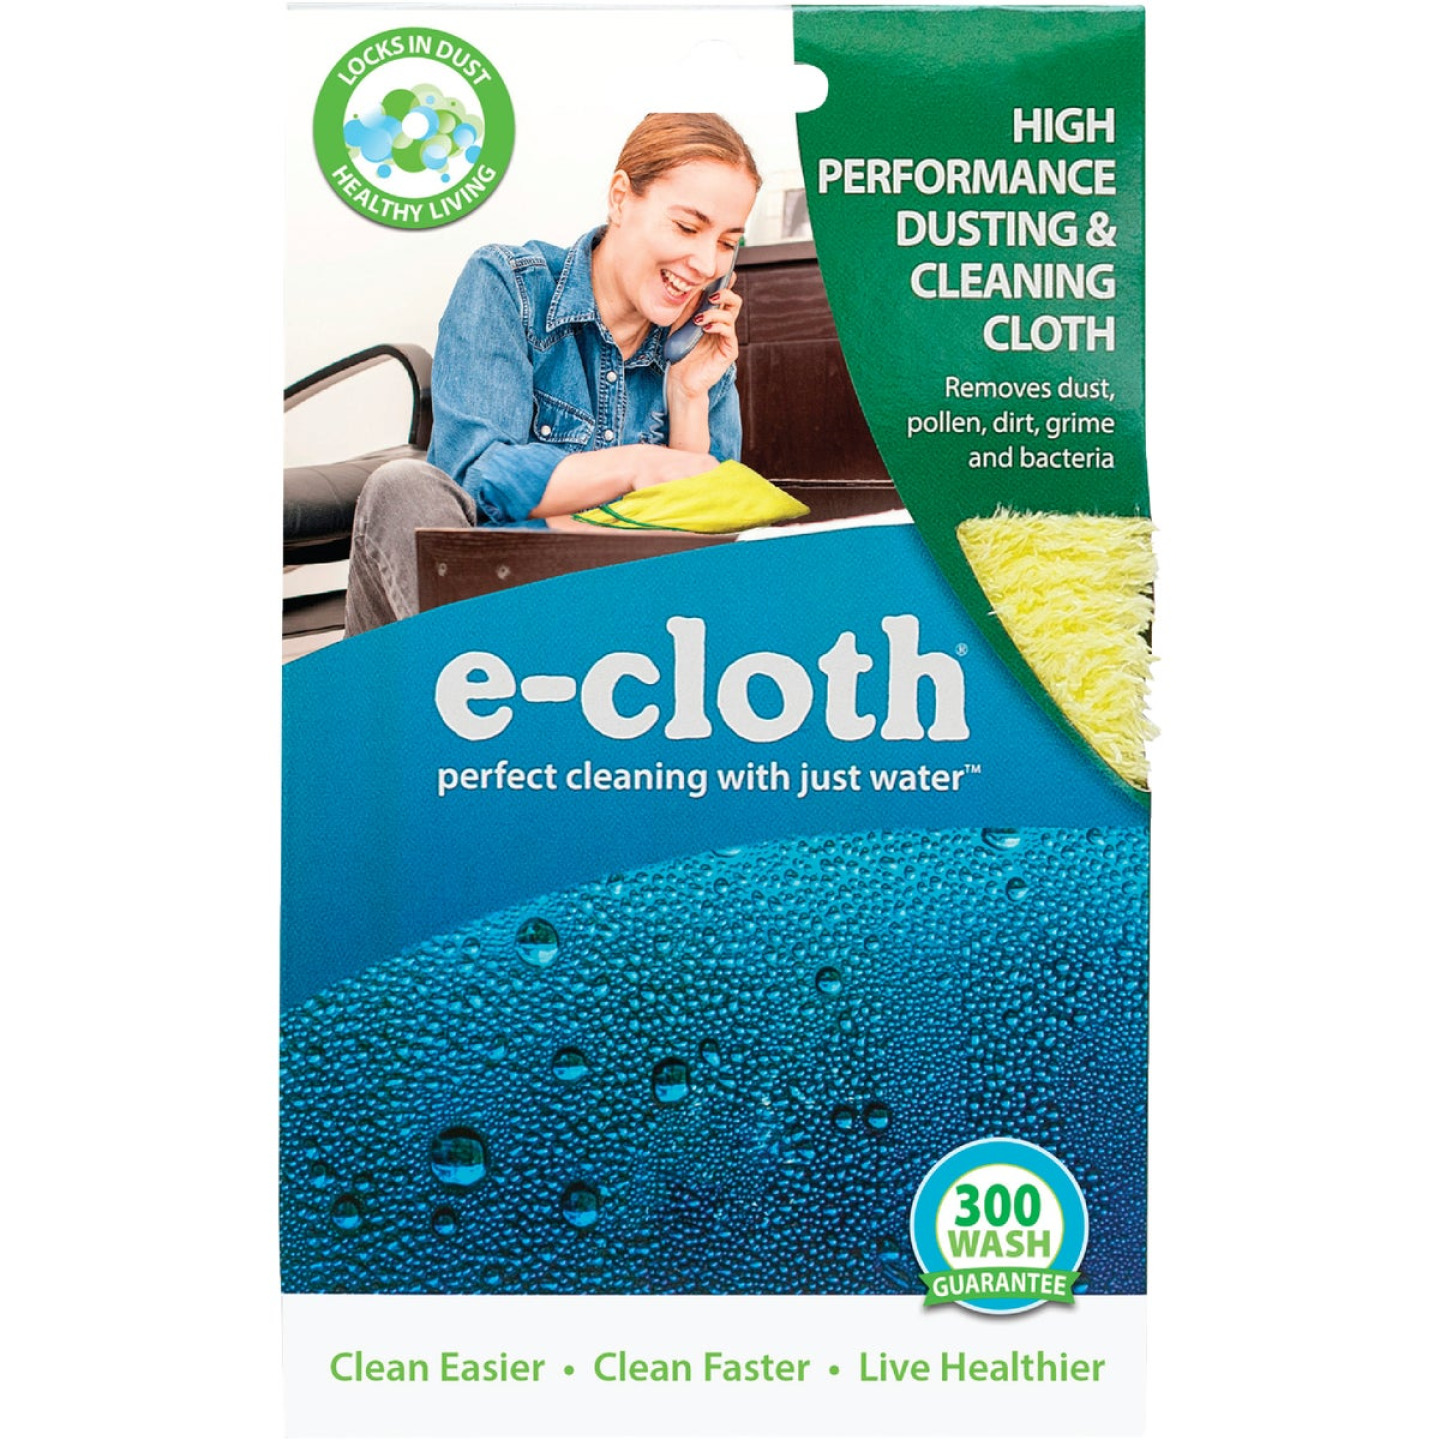 E-Cloth 12.5 In. x 12.5 in. High Performance Dusting & Cleaning Cloth Image 2